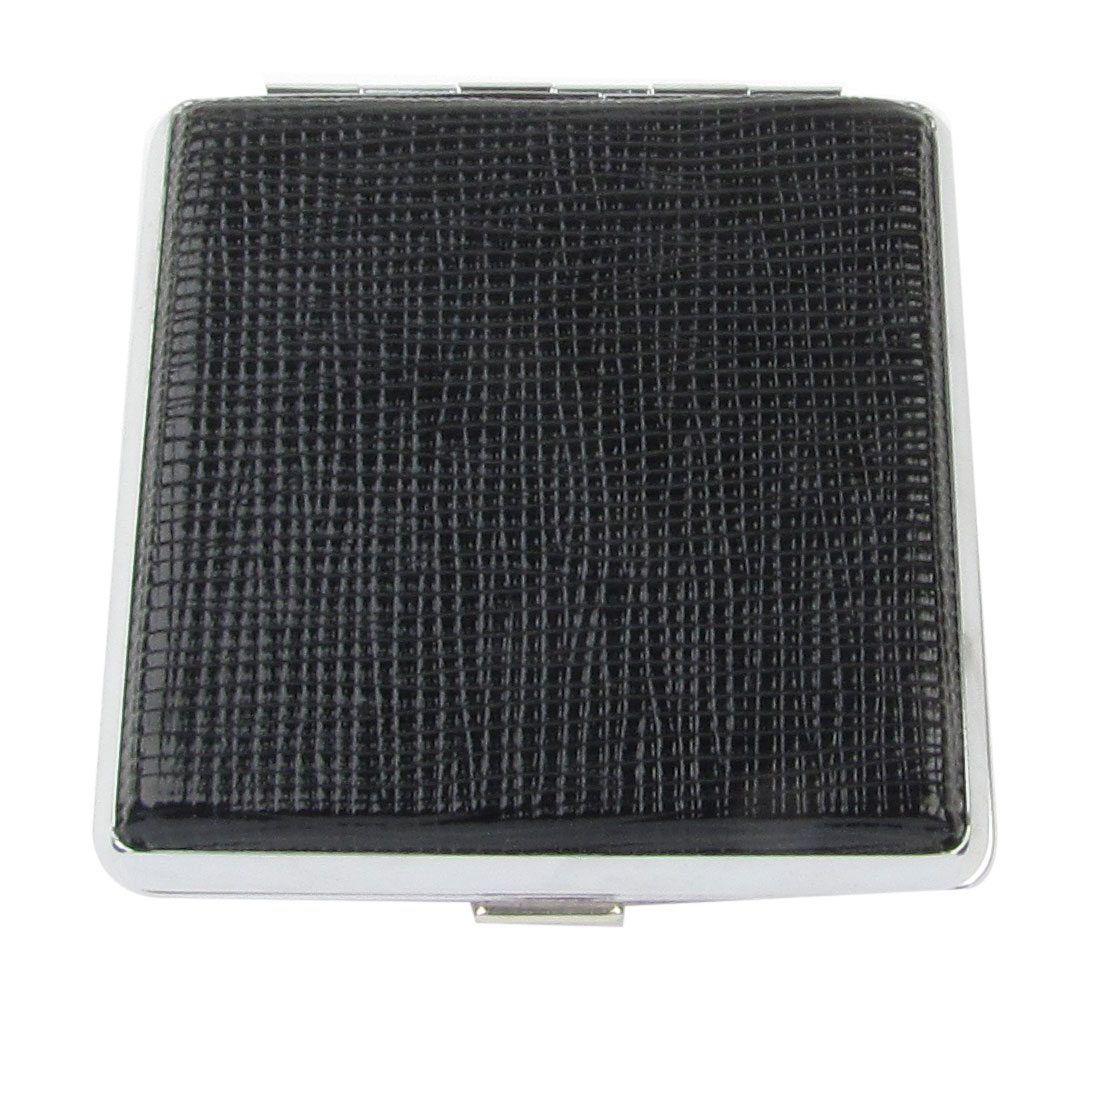 Gentleman Stripe Printed Black Faux Leather Metal Cigarettes Tobacco Box Case